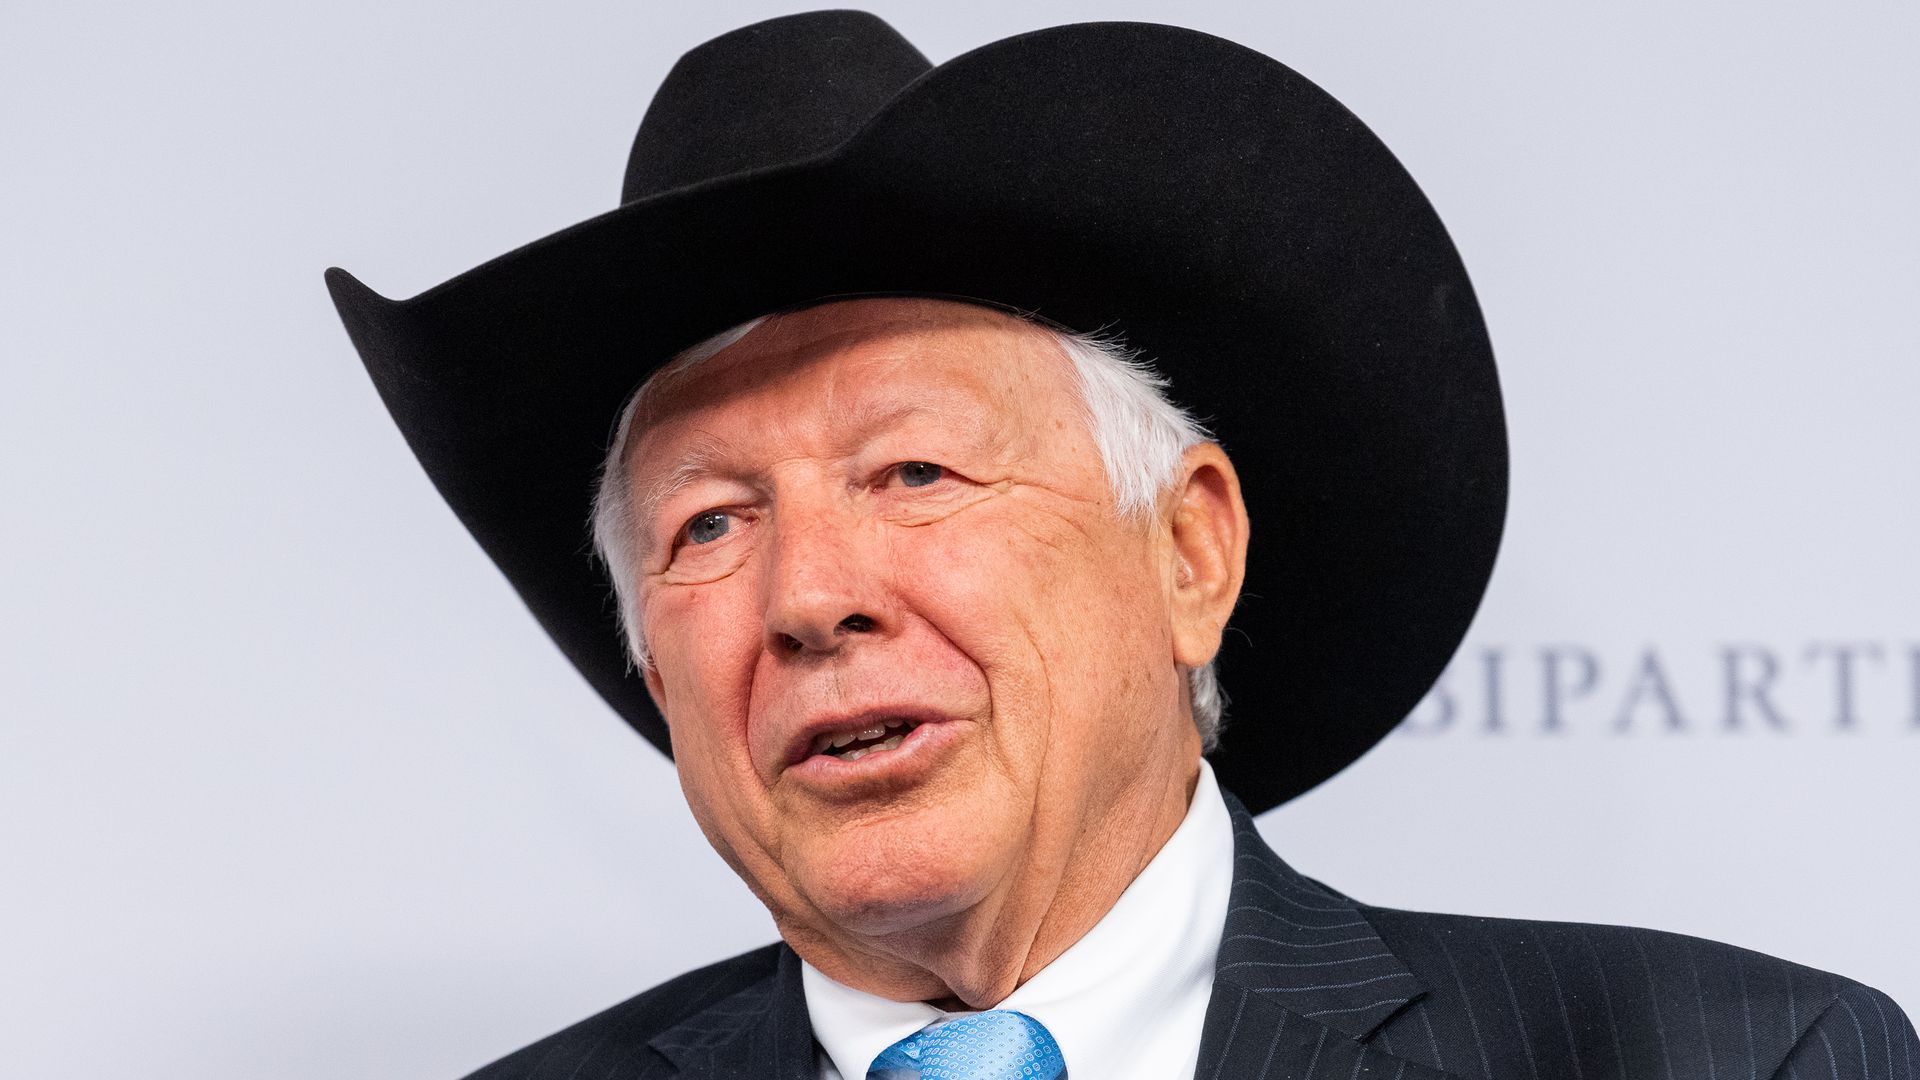 Foster Friess donning a black cowboy hat